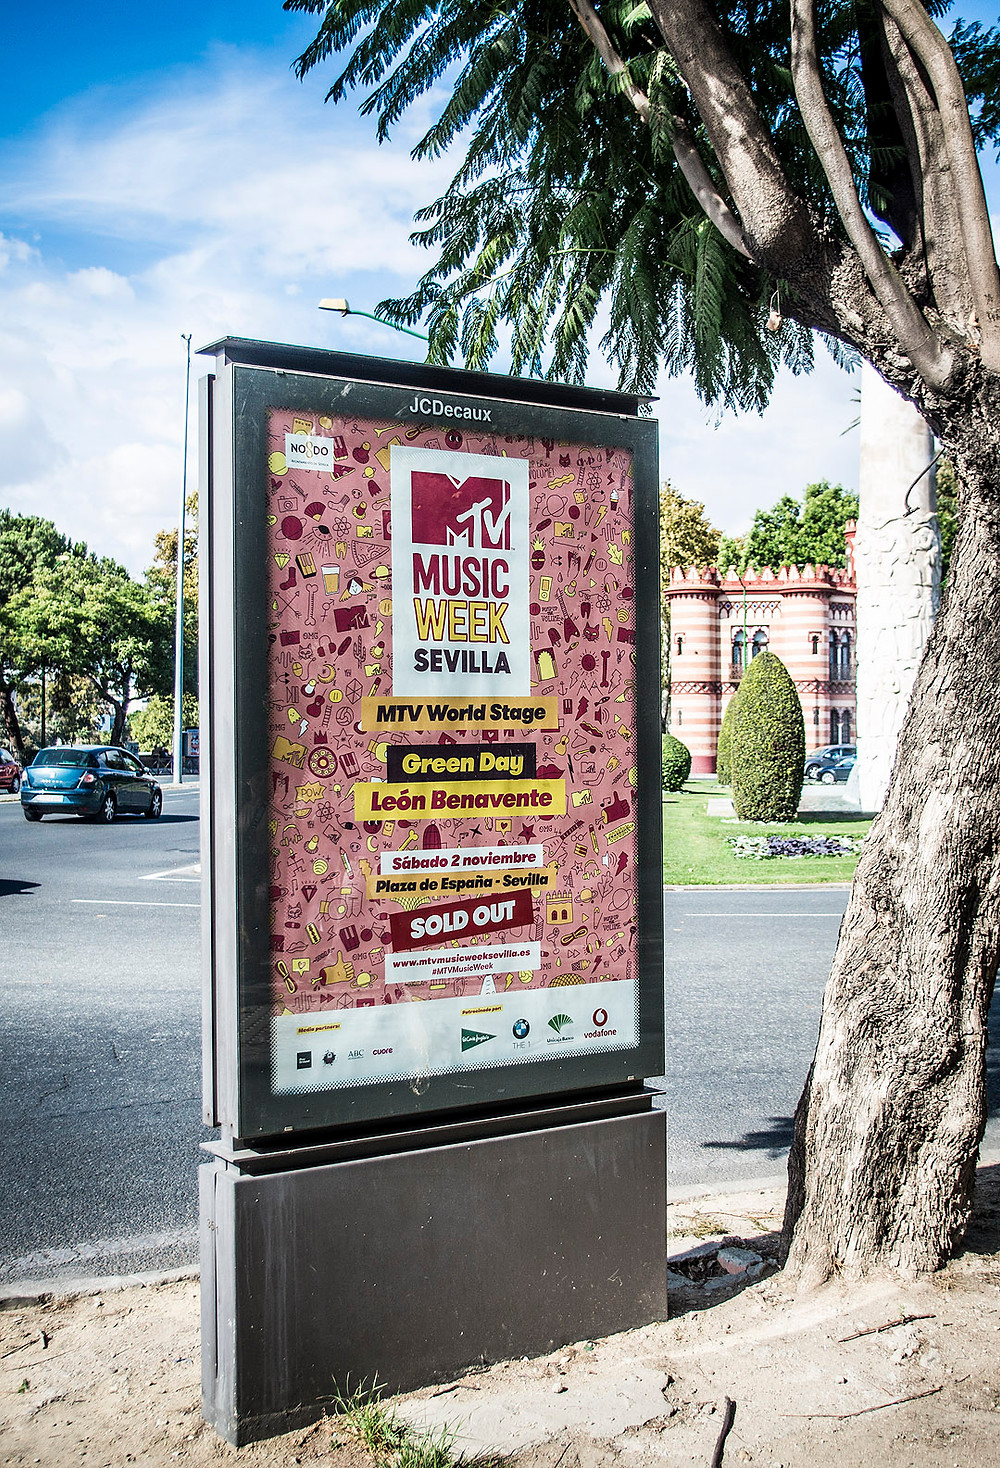 Green Day MTV World Stage poster in Seville